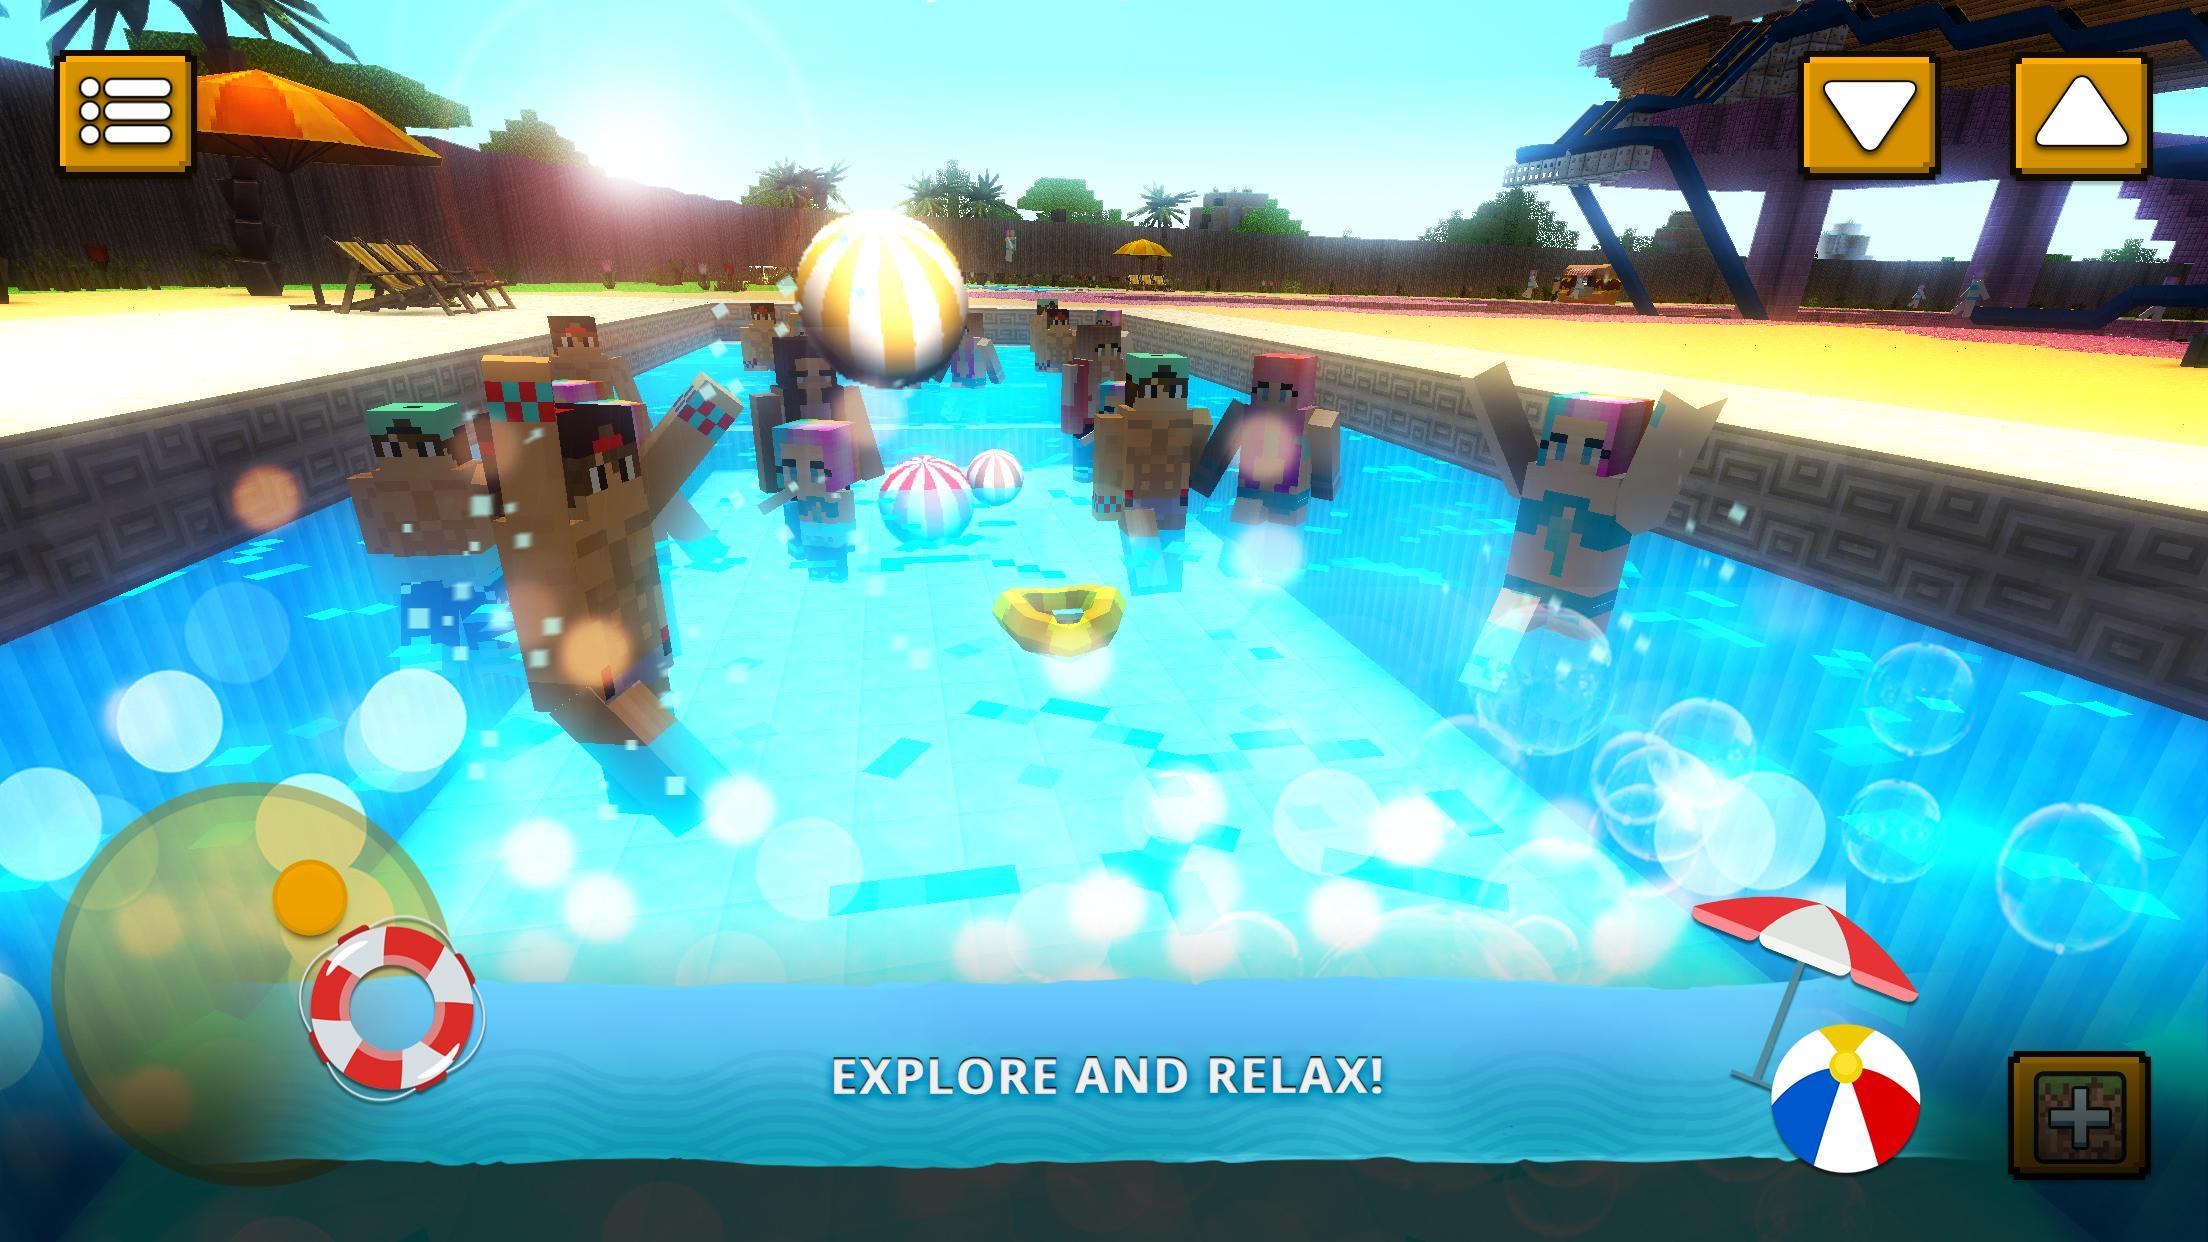 Water Park Craft for Android - APK Download